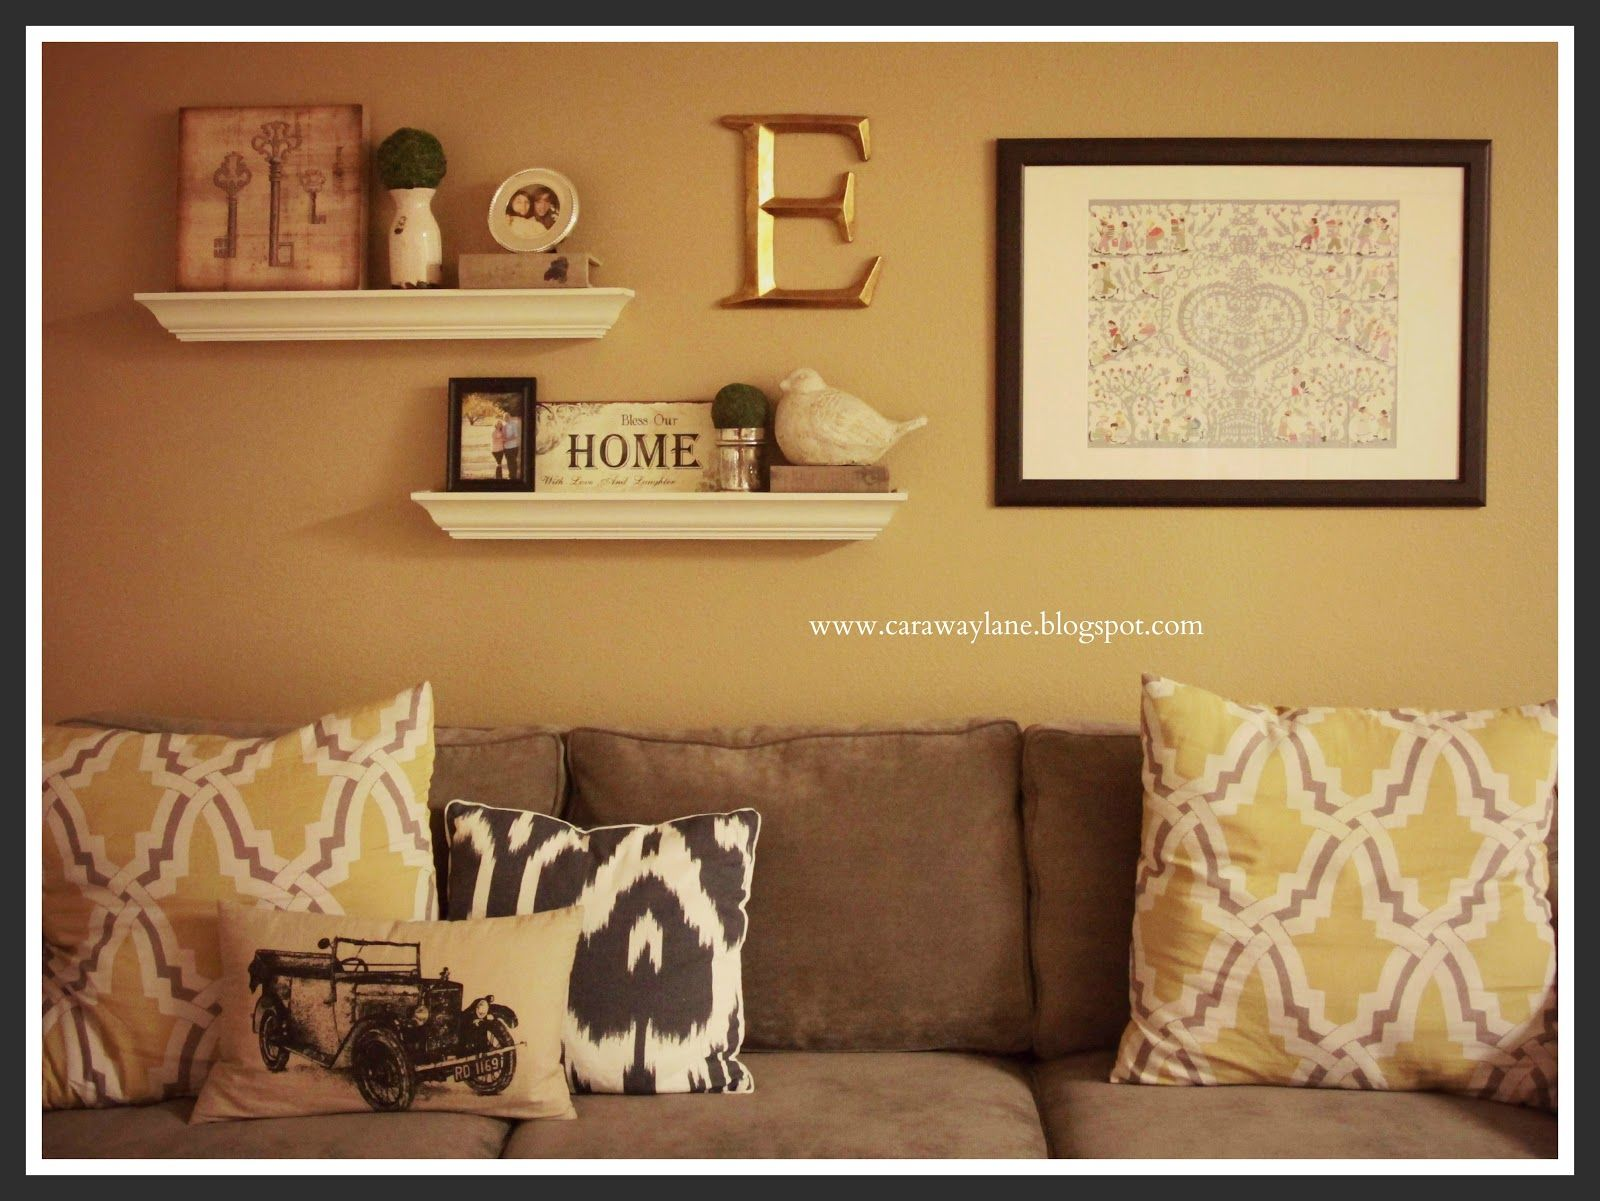 Decorate over a sofa above the couch wall decor future for Room wall decoration ideas